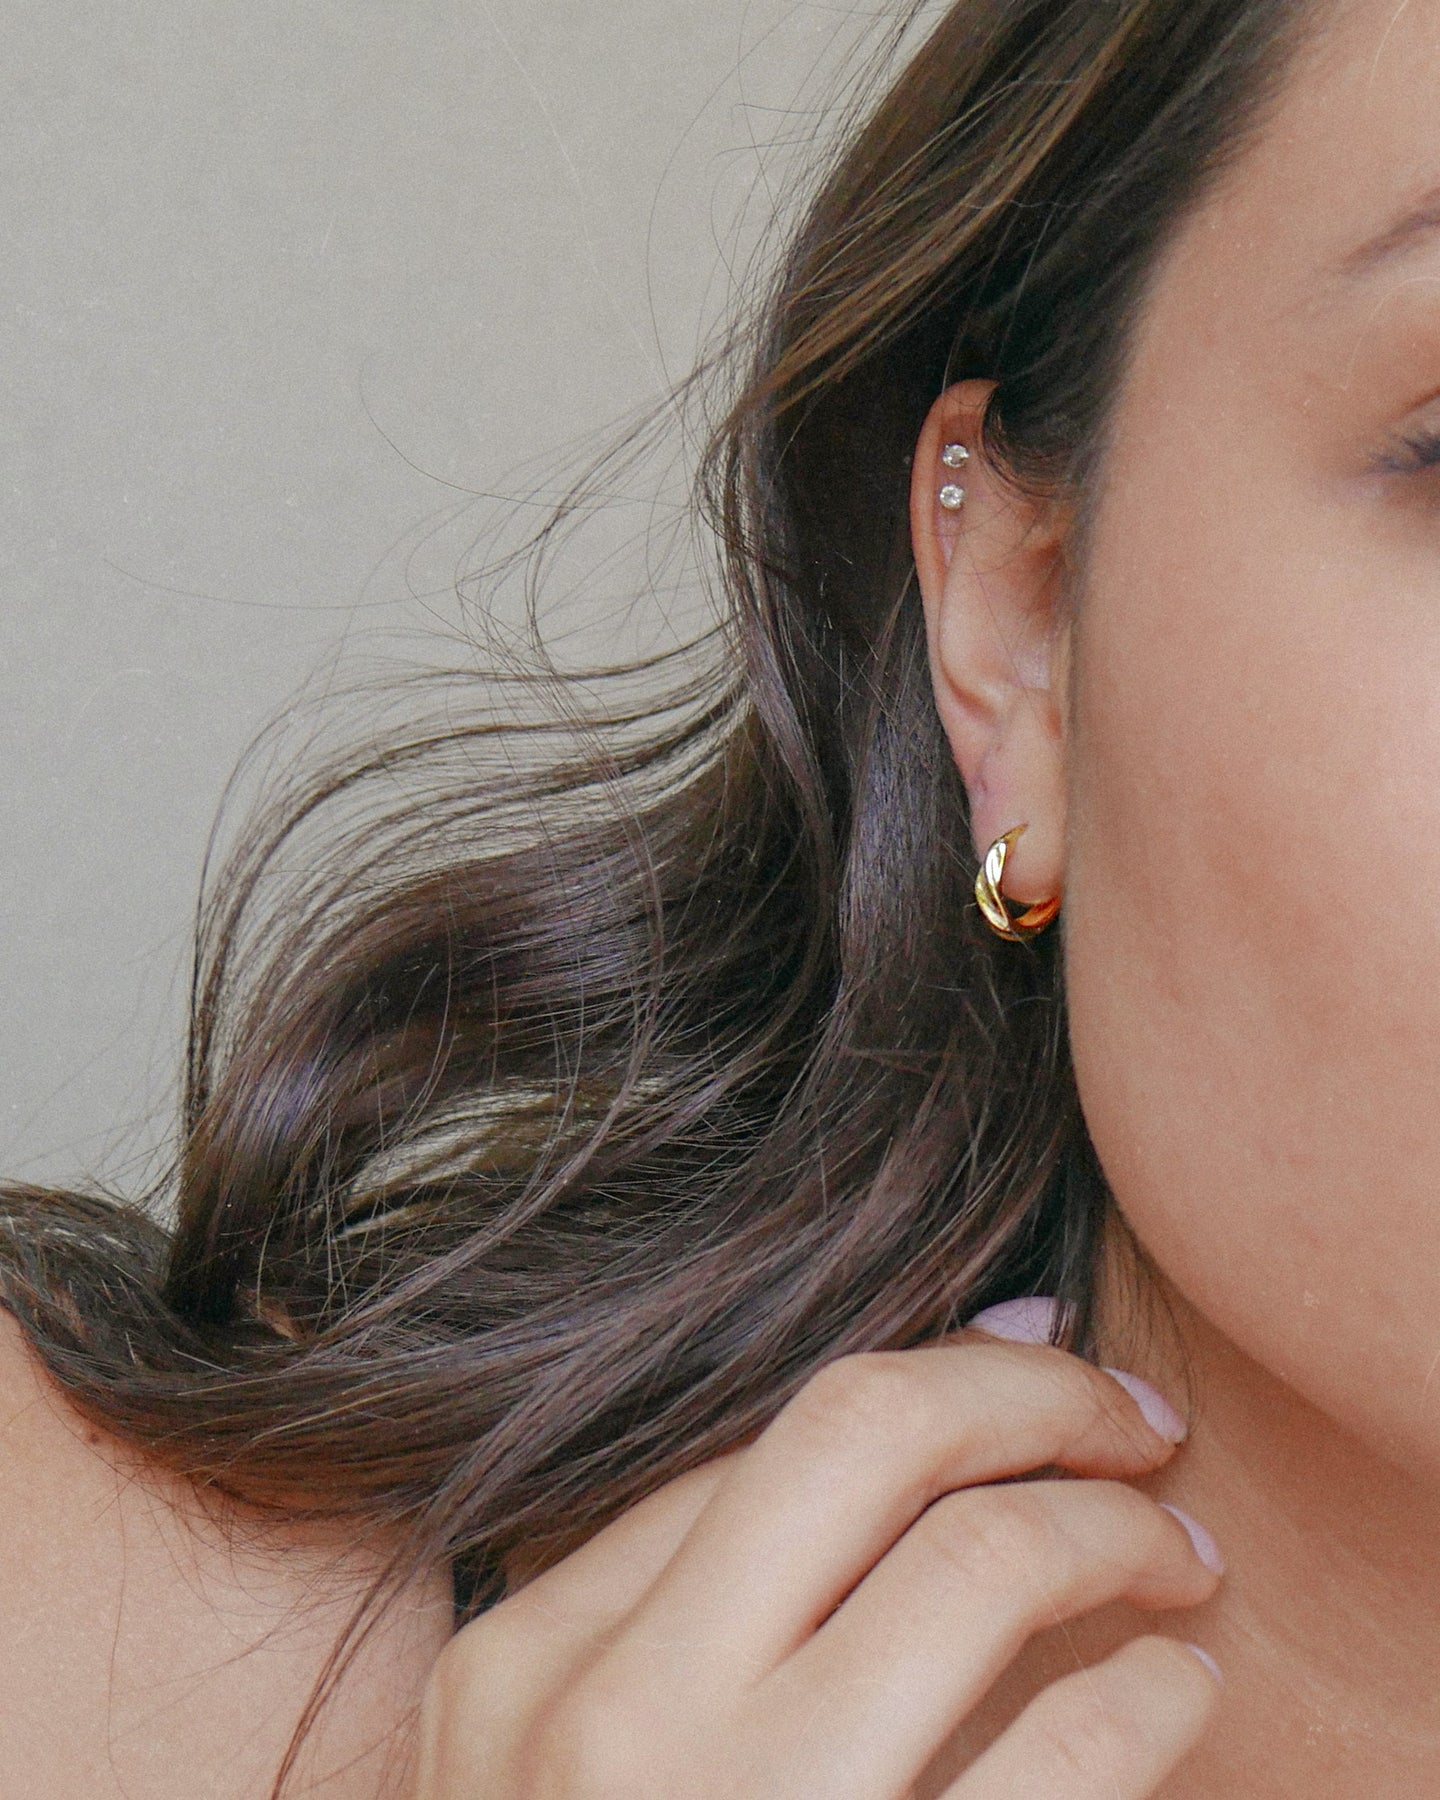 Small gold plated sterling silver hoop earrings with a wave croissant style texture